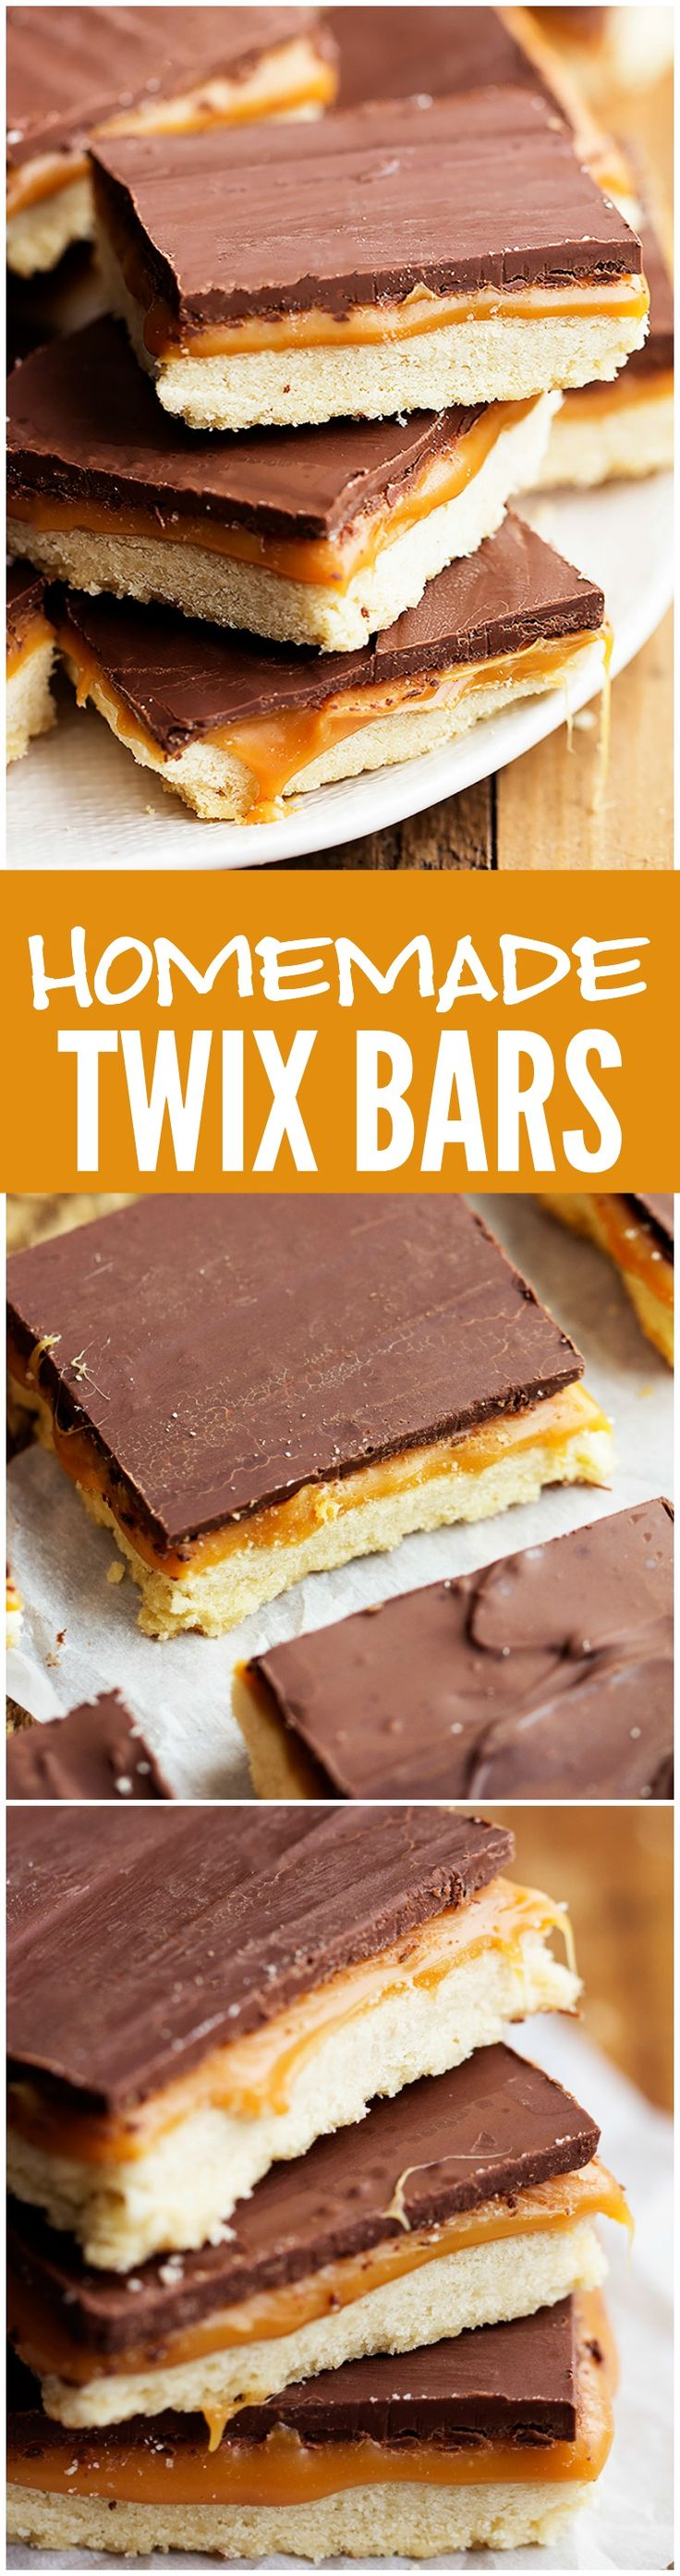 These Homemade Twix Bars taste EXACTLY like the real thing! Shortbread, caramel and chocolate create these heavenly bars!